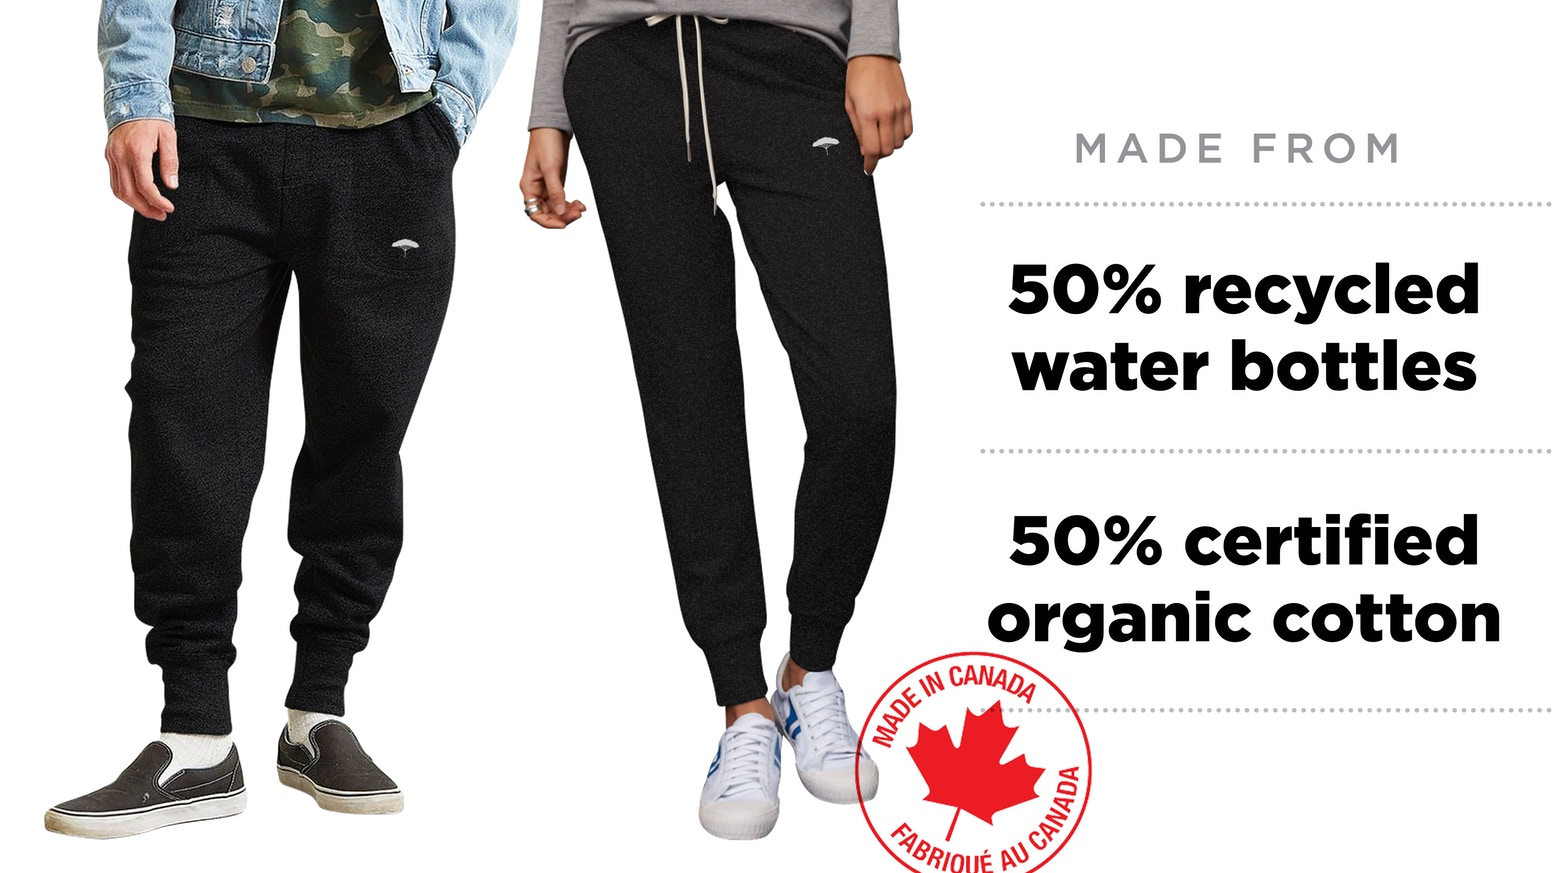 One pair of joggers will save 110 days of drinking water, 8 plastic bottles from the landfill, and 1 whole day of light bulb energy.